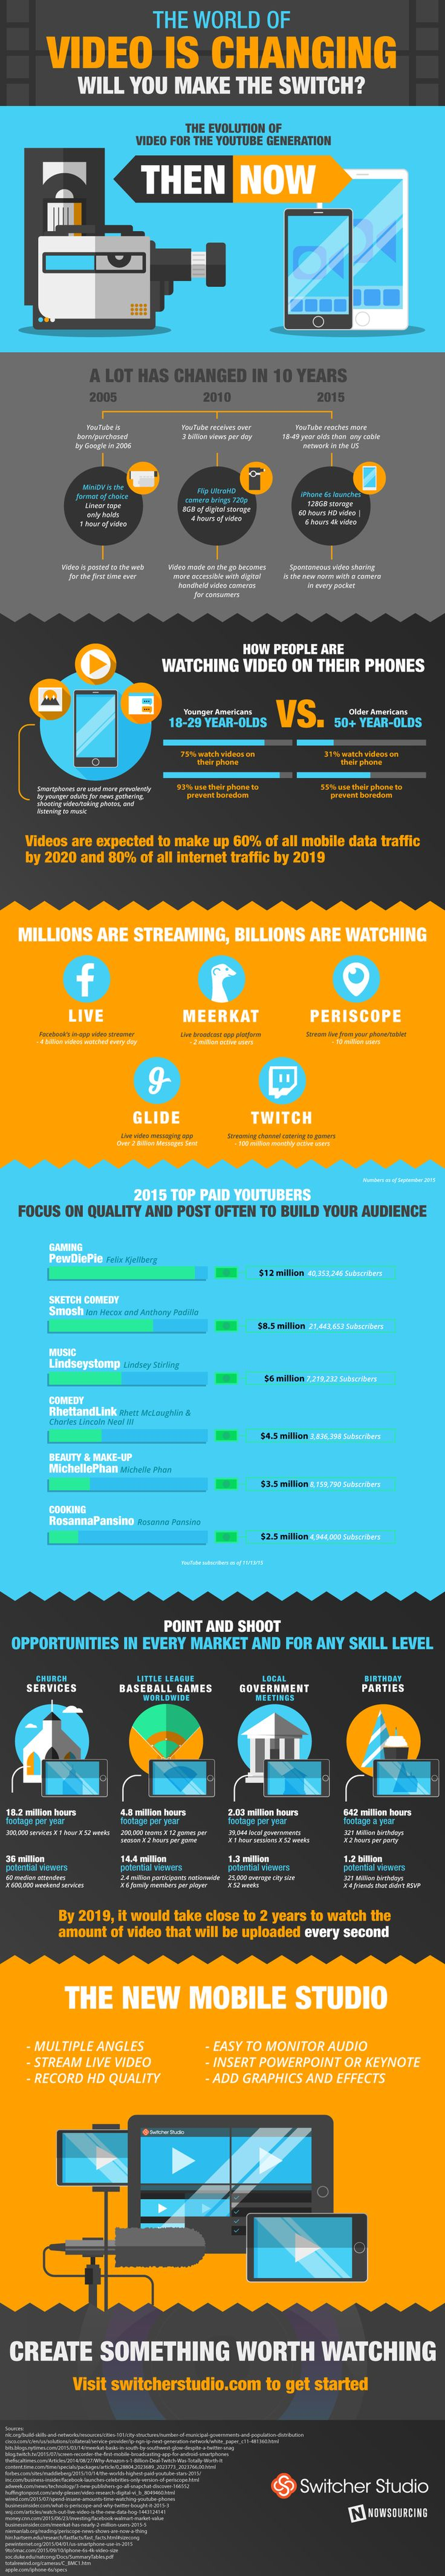 How Is The World Of Video Changing And What Do You Need To Do Now? #infographic